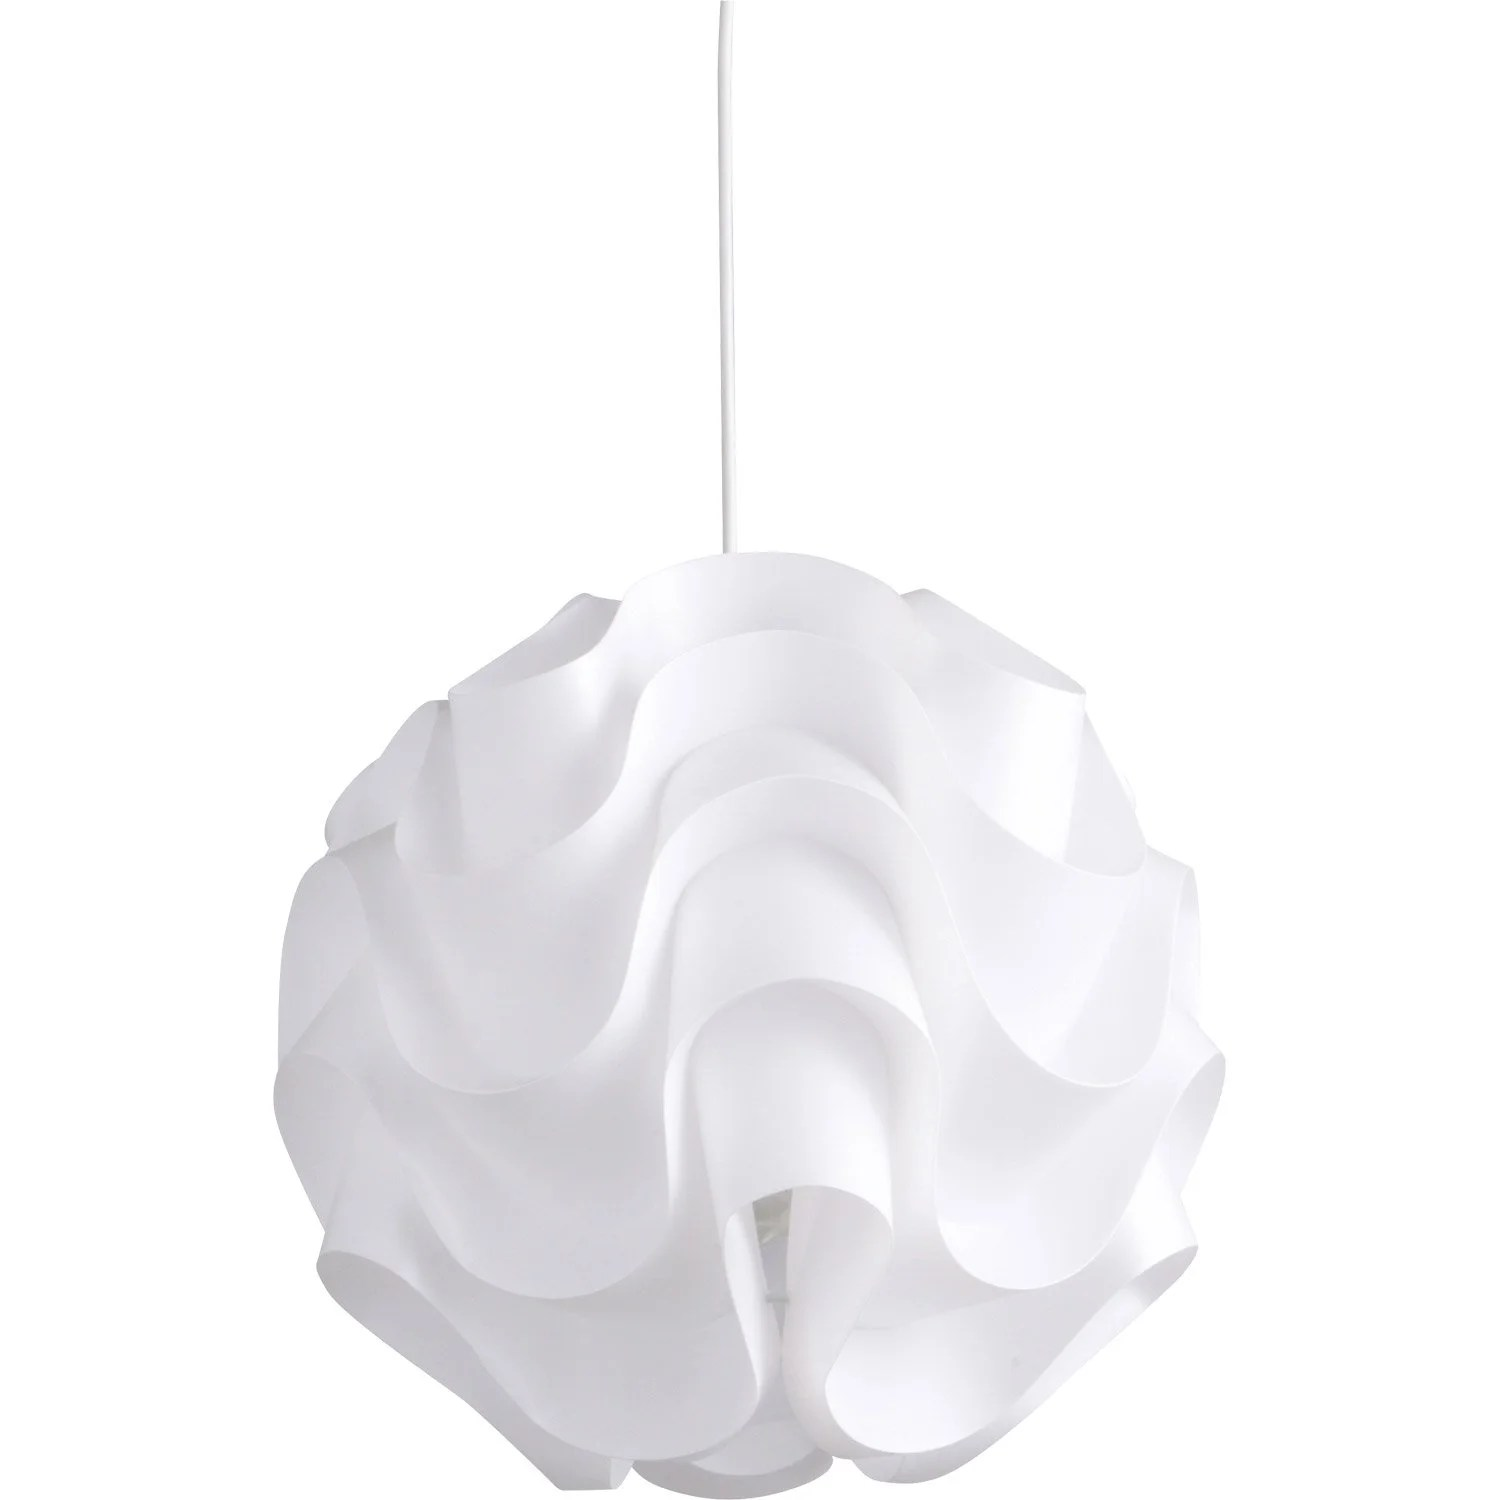 Luminaire Inspire Leroy Merlin Suspension Design Sky Plastique Blanc 1 X 60 W Inspire